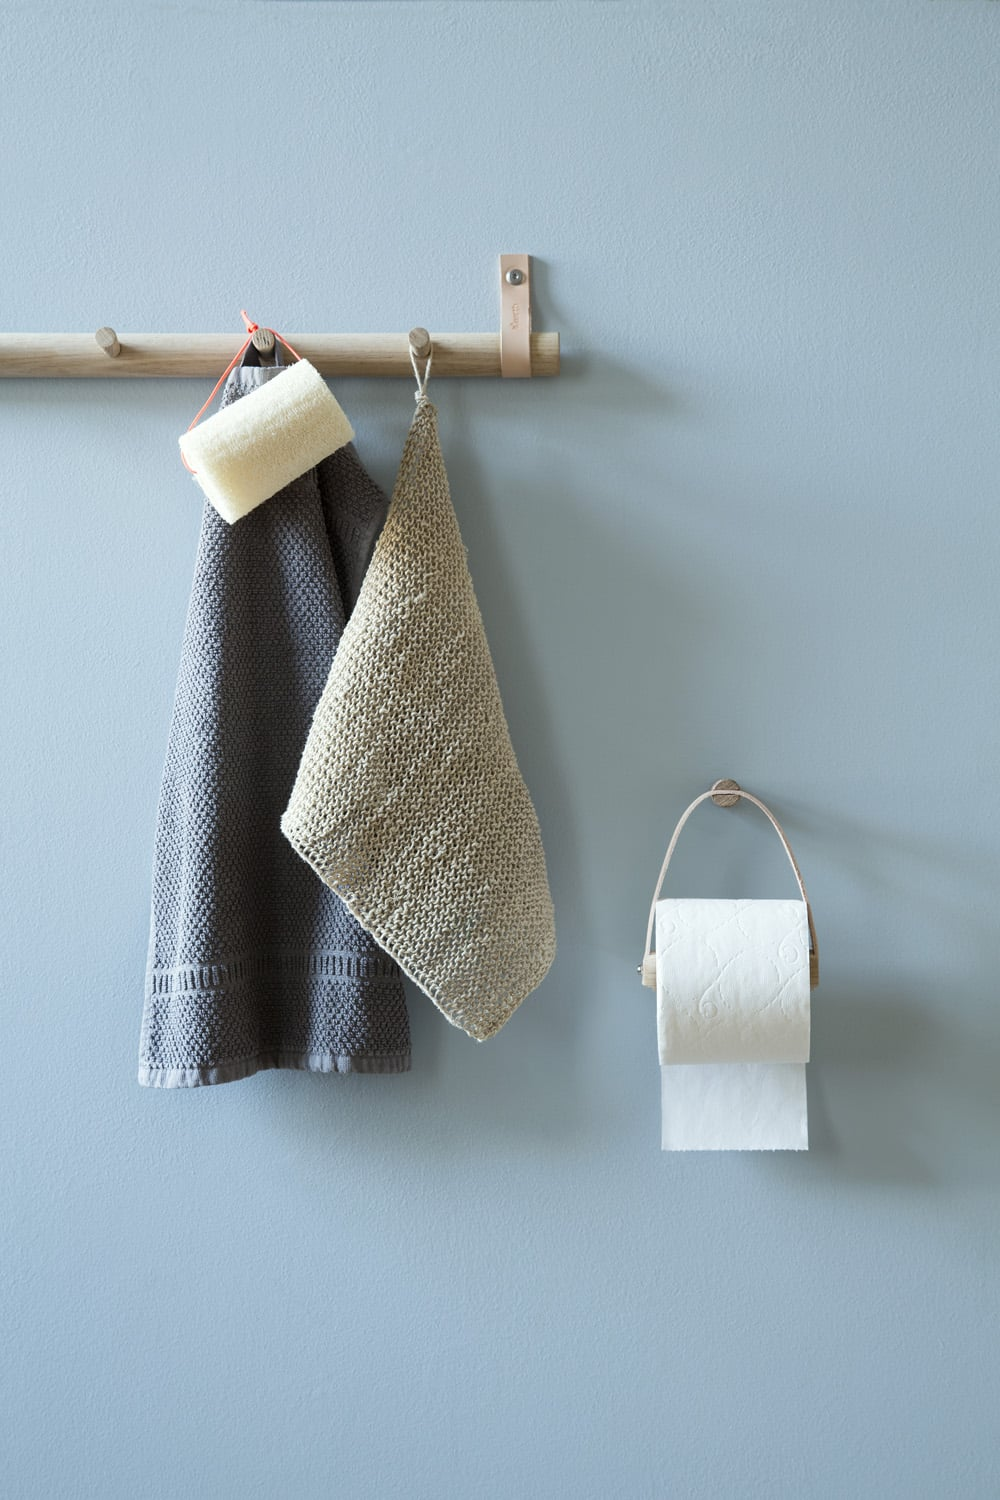 Lether and oak bathroom hooks | by Wirth